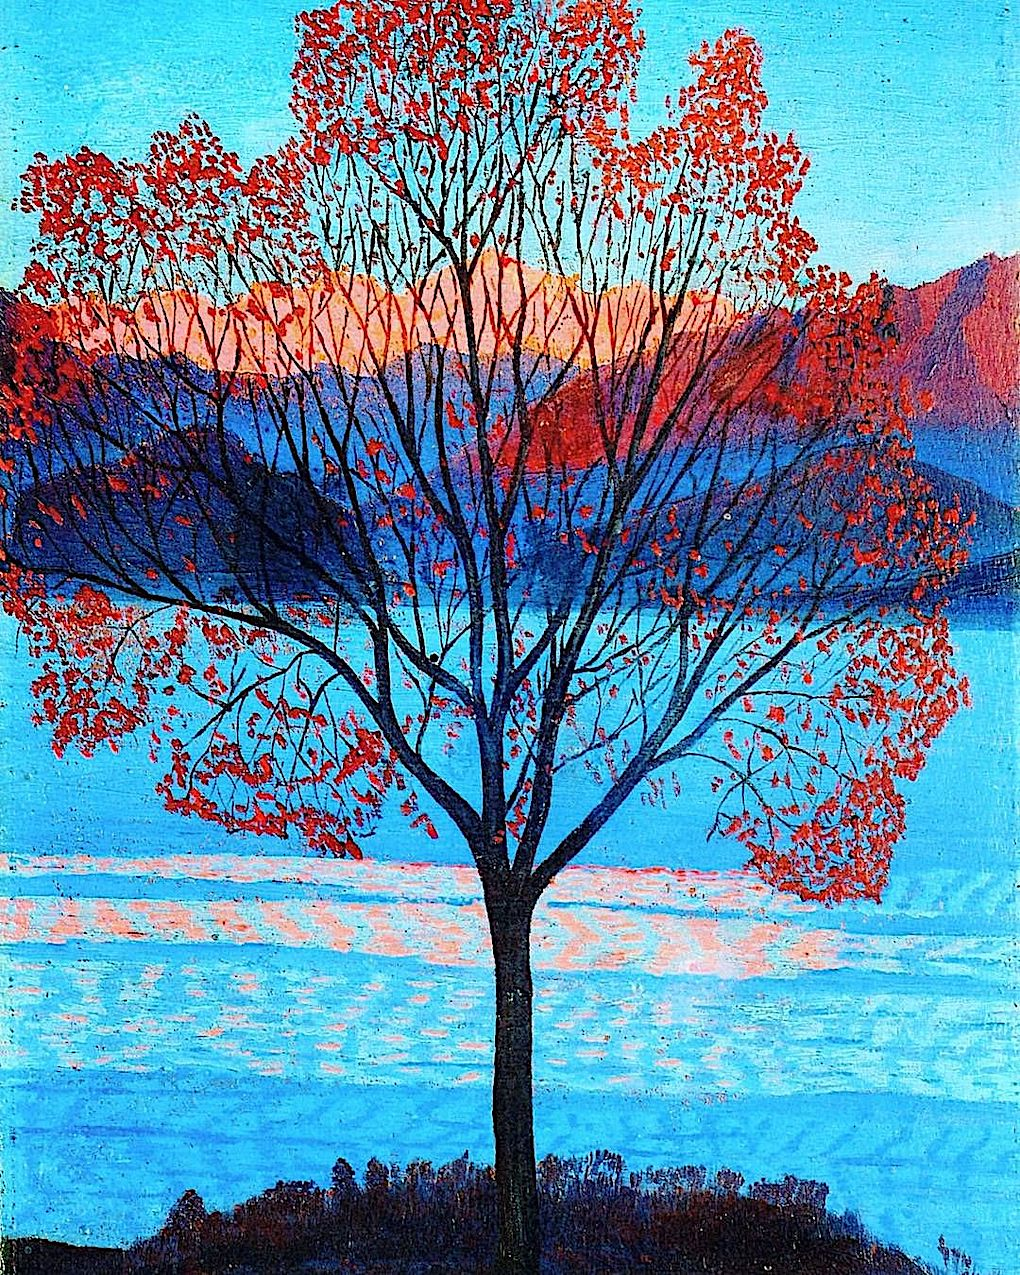 a Luigi Russolo 1940 painting of a tree with rd leaves